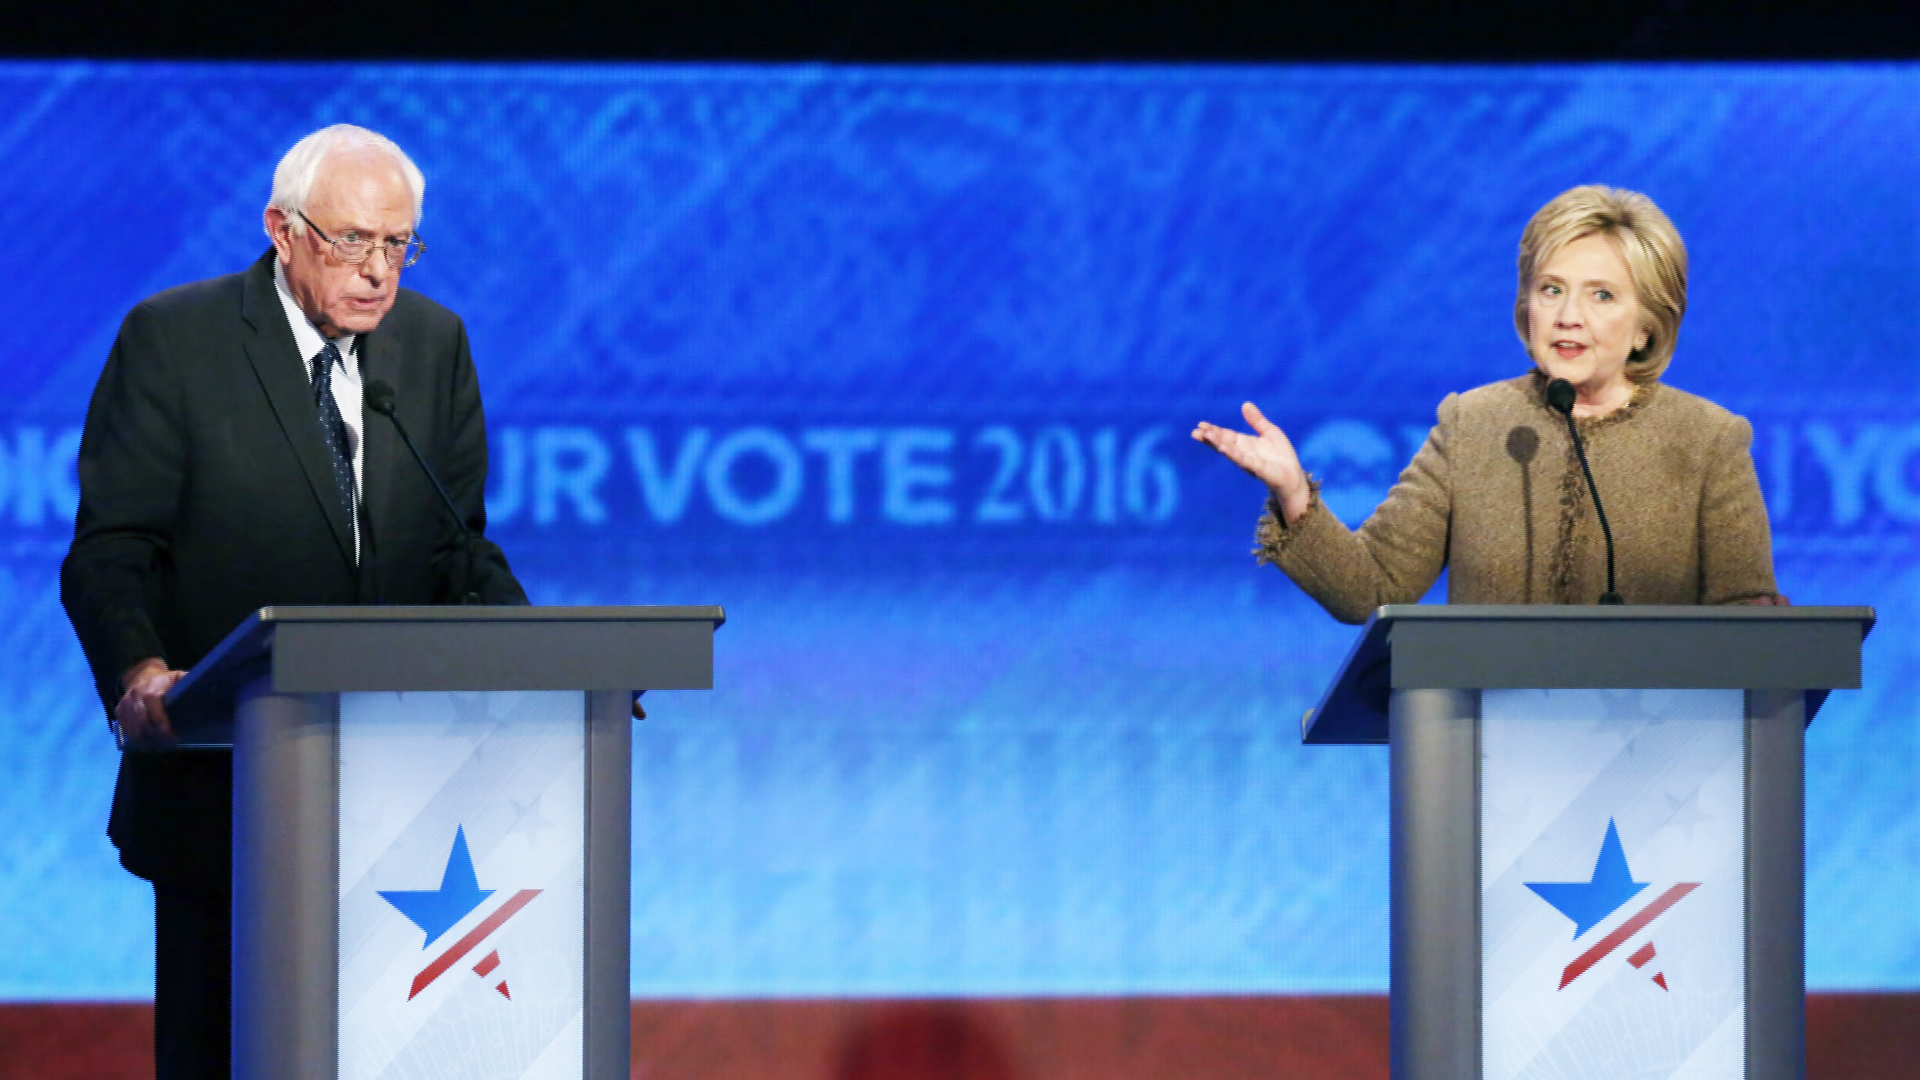 Clinton's Emails Give Glimpse Into a Candidate Often Under Pressure